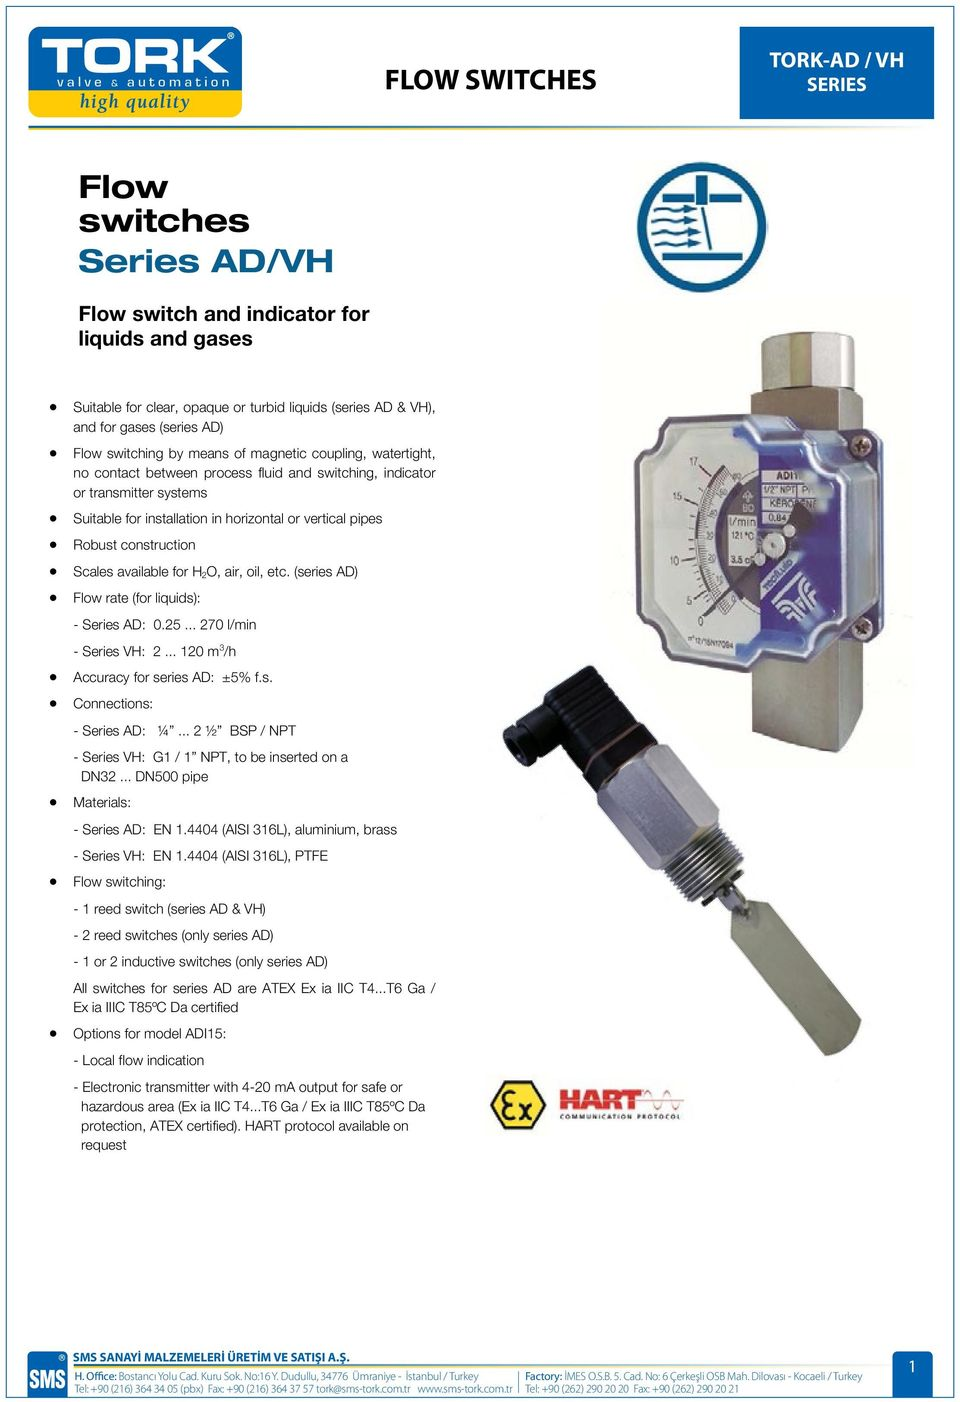 air, oil, etc. (series AD) Flow rate (for liquids): - Series AD: 0.25... 270 l/min - Series VH: 2... 120 m 3 /h Accuracy for series AD: ±5% f.s. Connections: - Series AD: ¼.